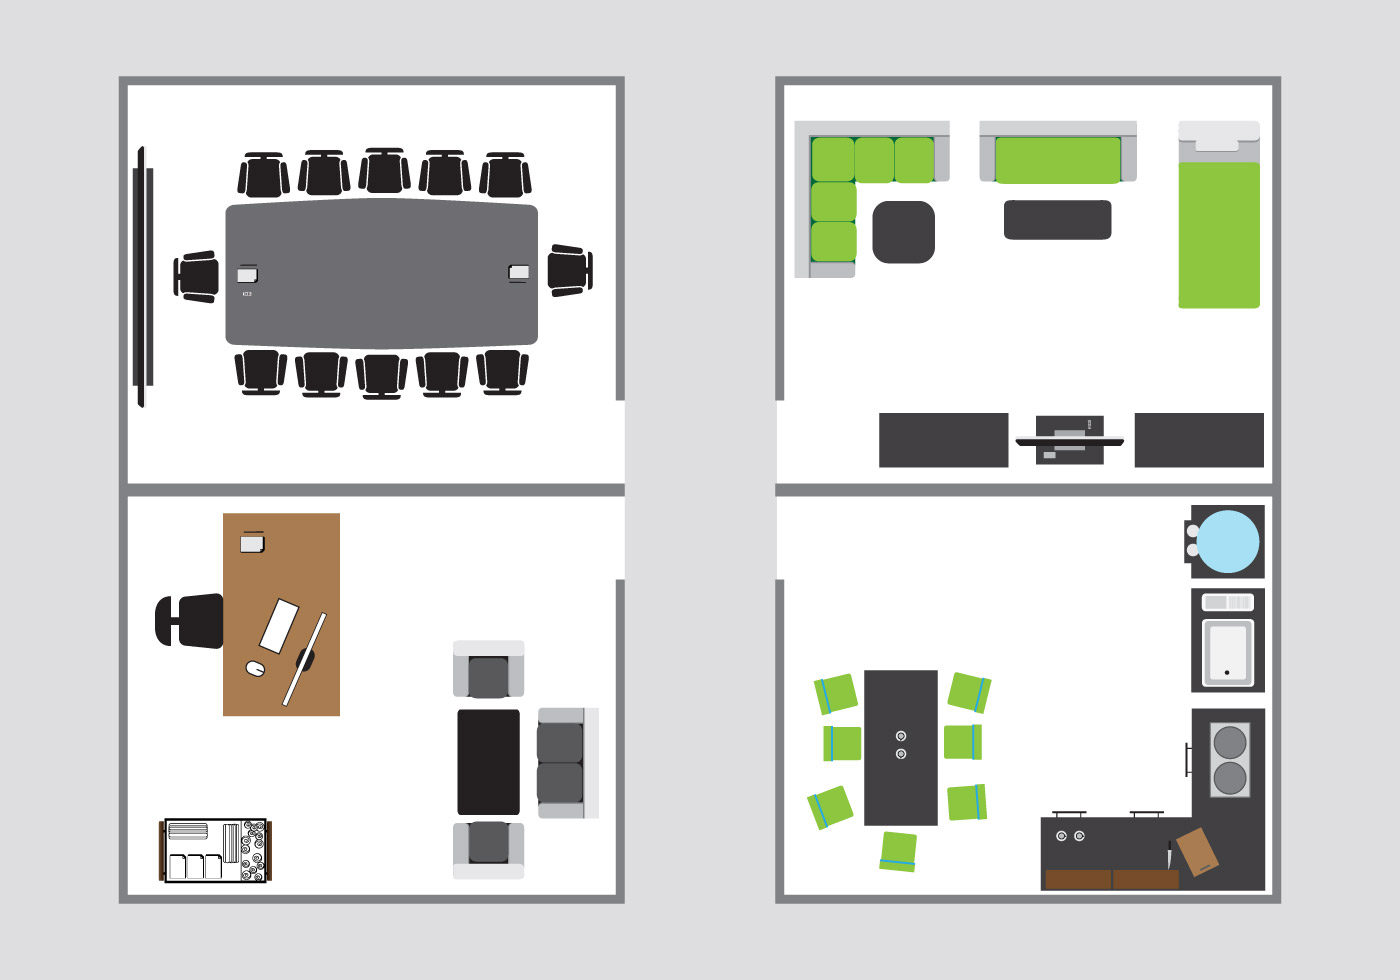 Top view for interior floorplan download free vector art for Interieur ontwerpen 3d